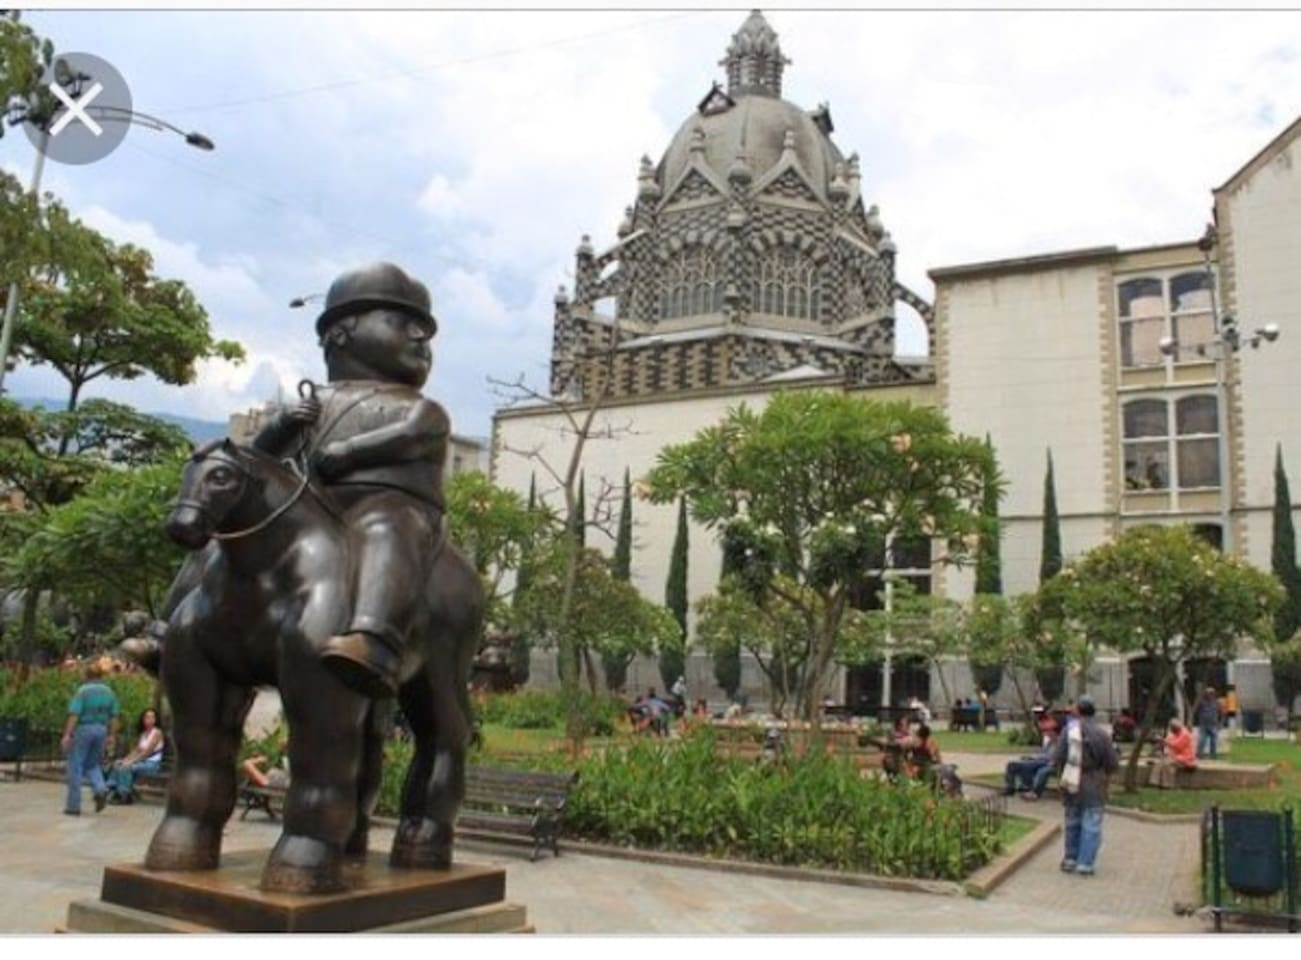 You'll be staying right on Plaza Botero, less than 100 m from the Museo de Antioquia.